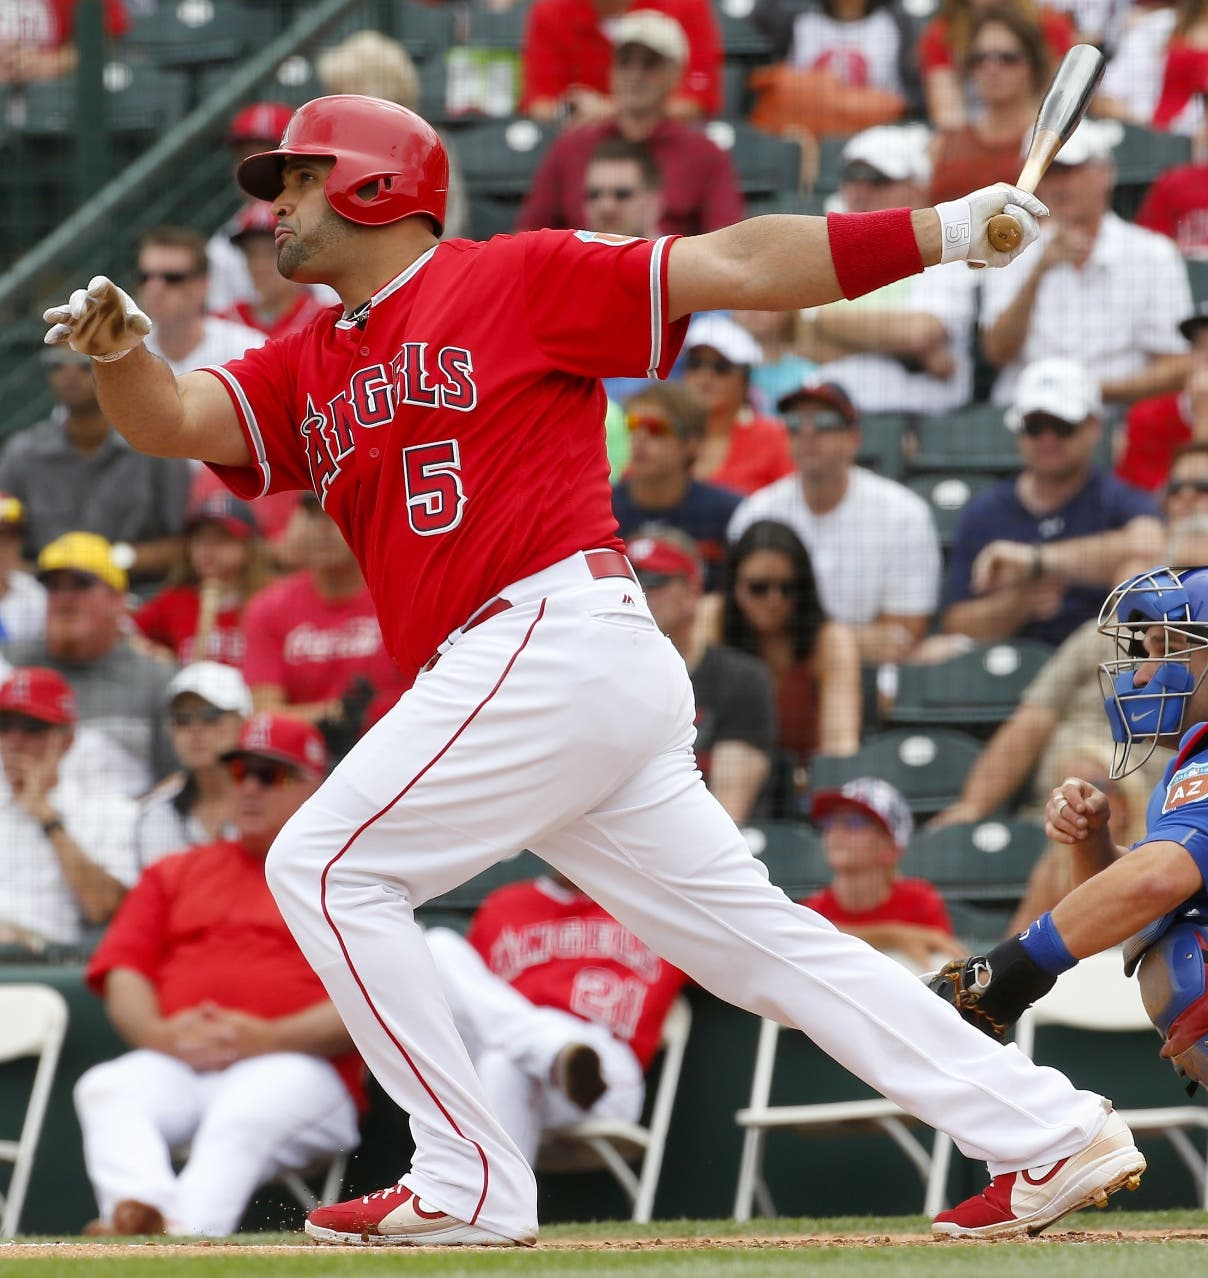 Los Angeles Angels' Albert Pujols follows through on an RBI double against the Chicago Cubs during the first inning of a spring training baseball game, Monday, March 28, 2016, in Tempe, Ariz. (AP Photo/Matt York)